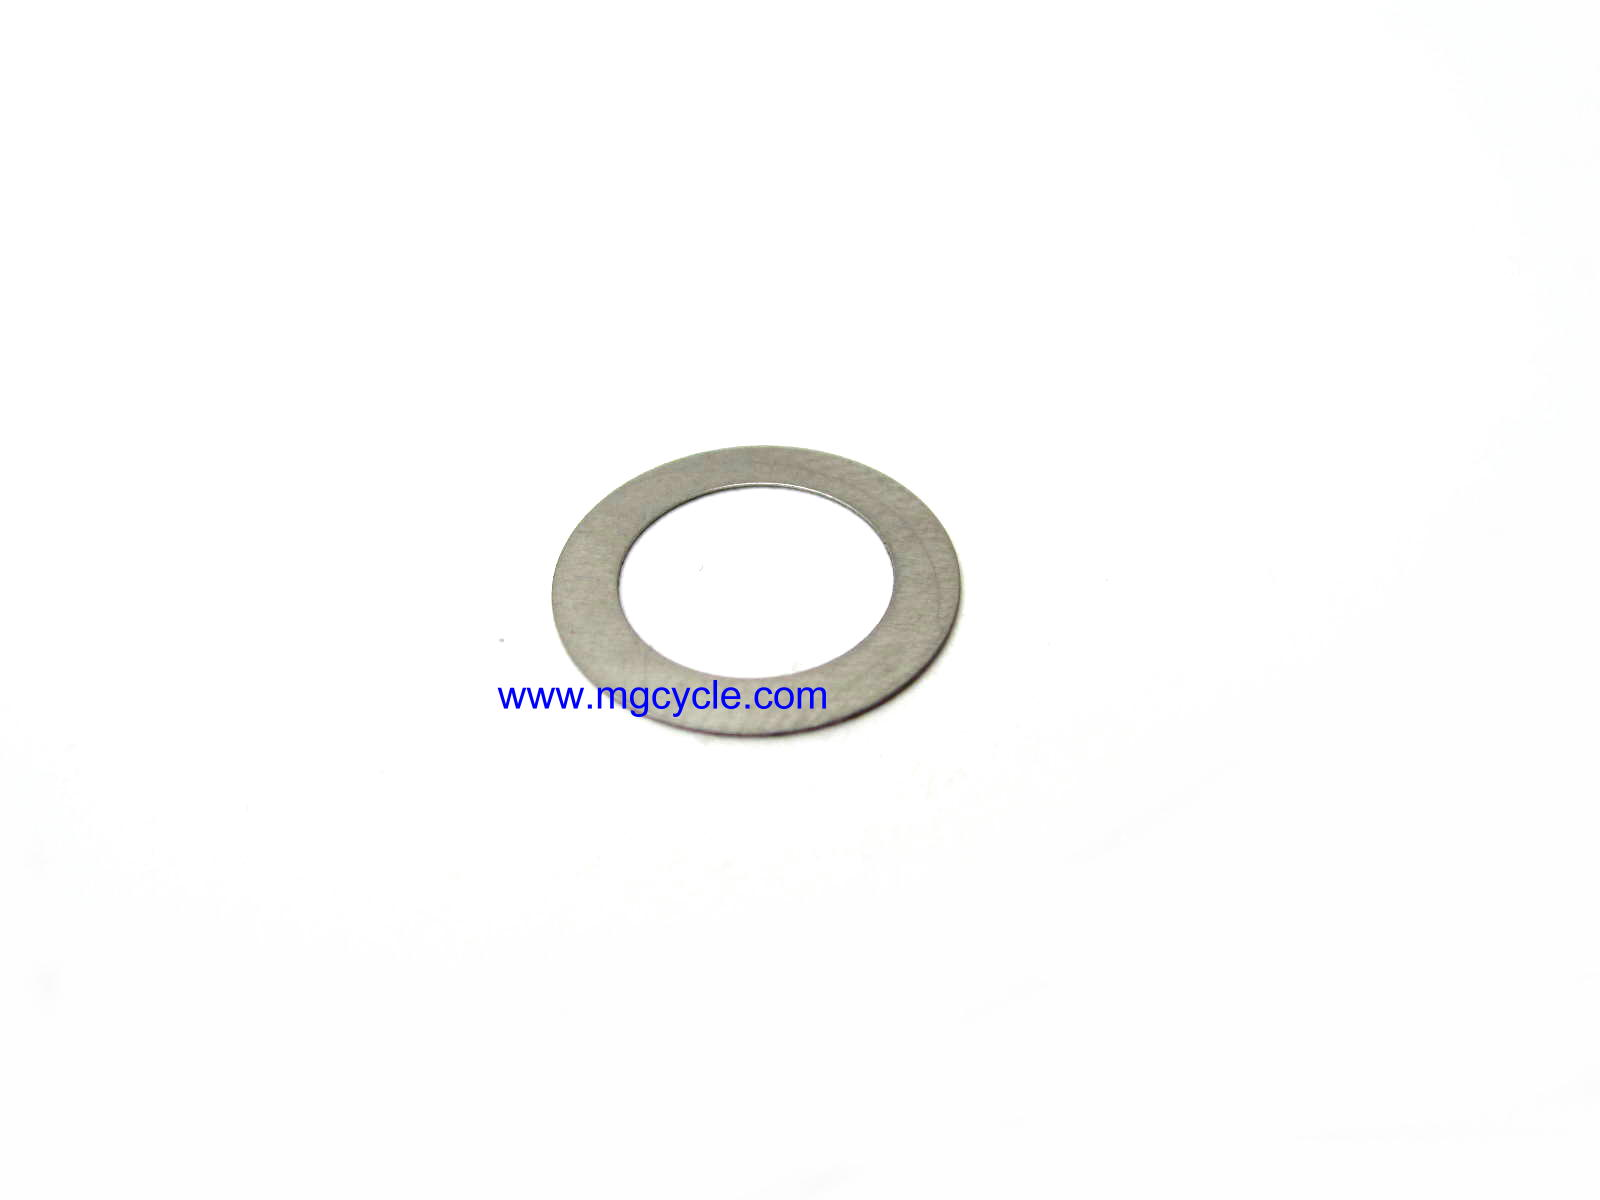 0.2mm thick petcock indexing washer for V700 Ambassador Eldorado